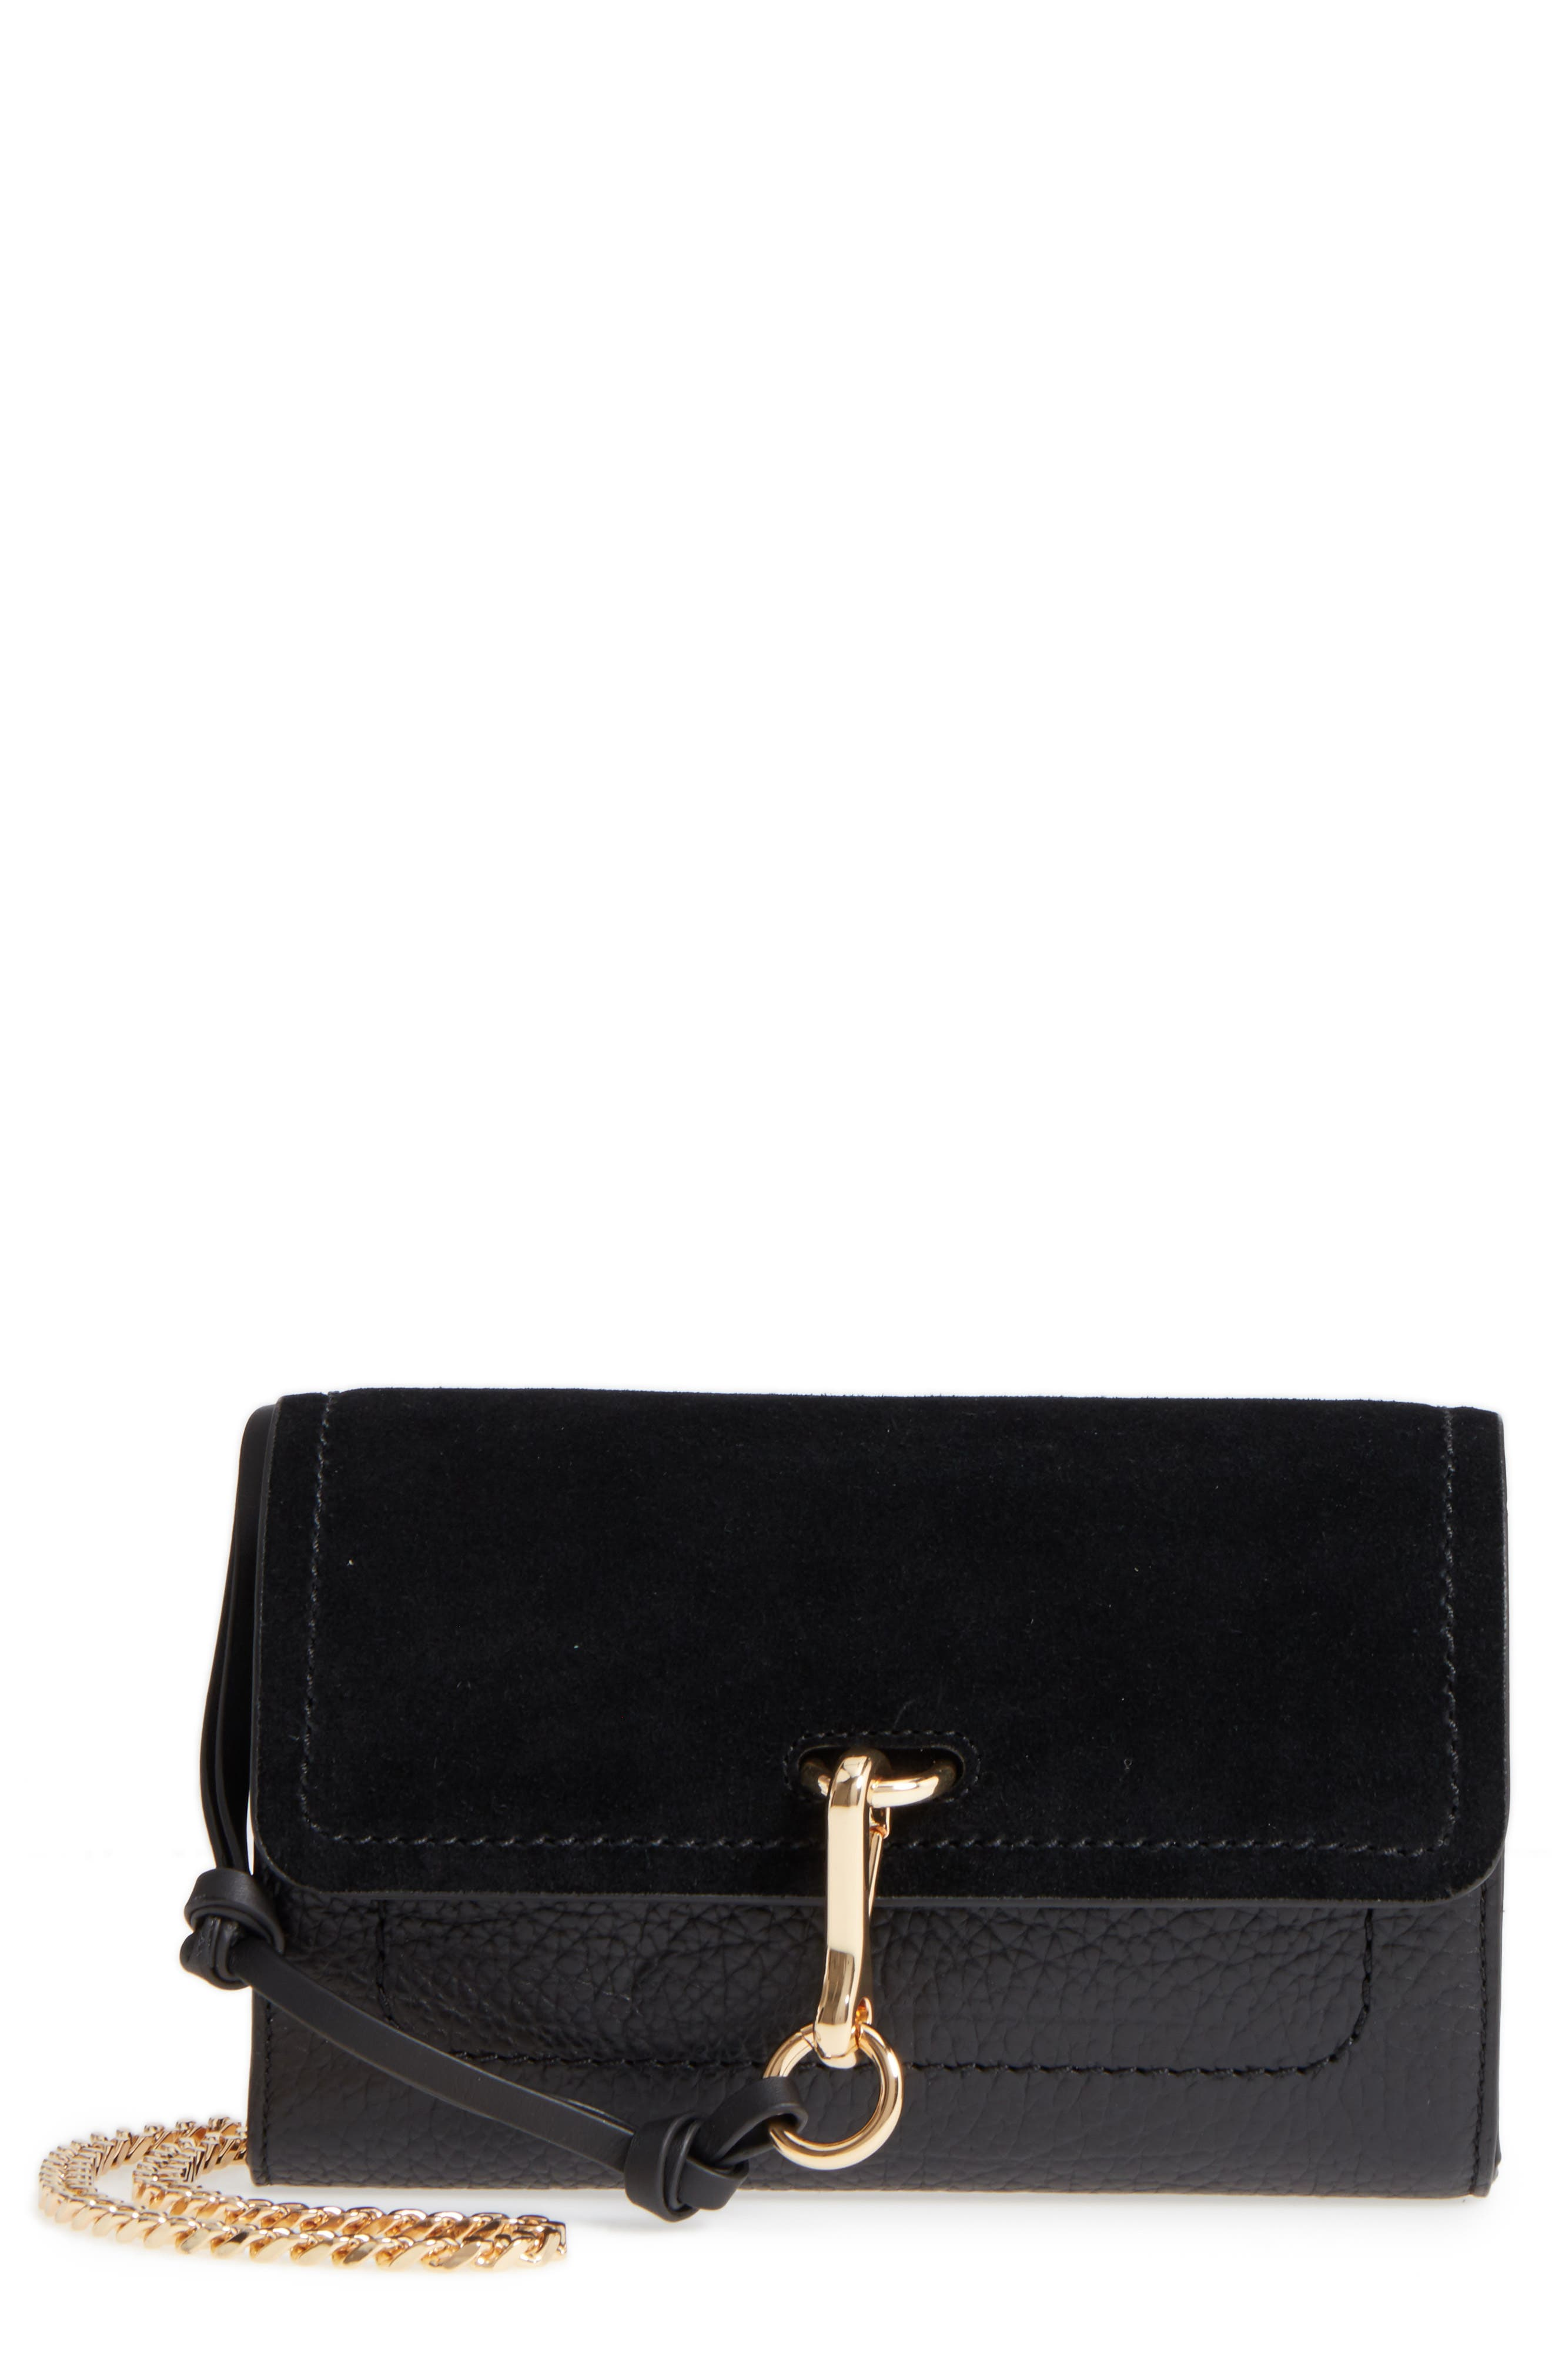 Blena Leather & Suede Clutch,                             Main thumbnail 1, color,                             001